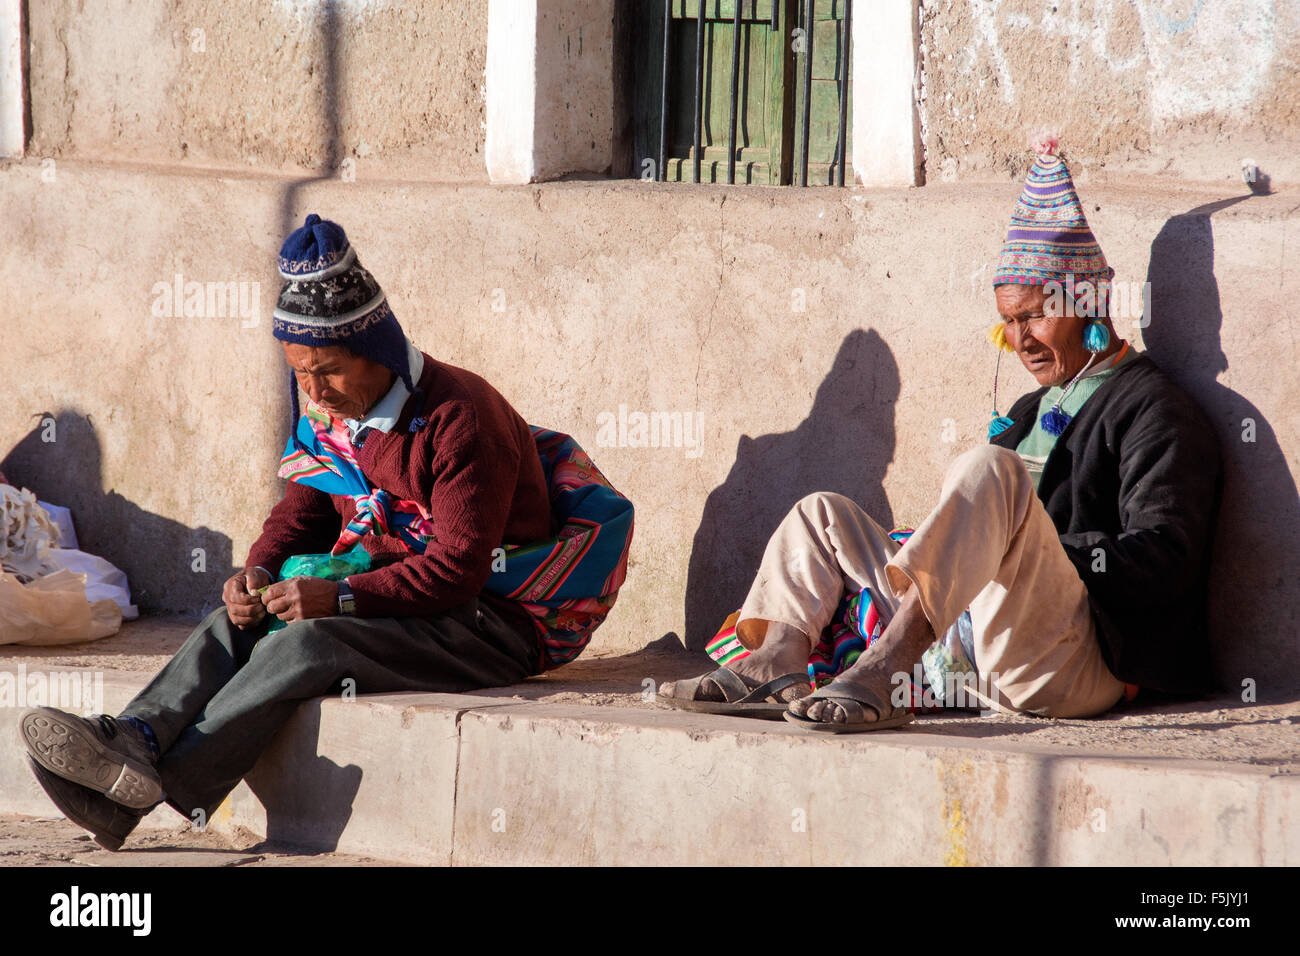 Typically dressed men with Chullos, chewing coca at siesta, Colquechaca, Potosi, Bolivia - Stock Image